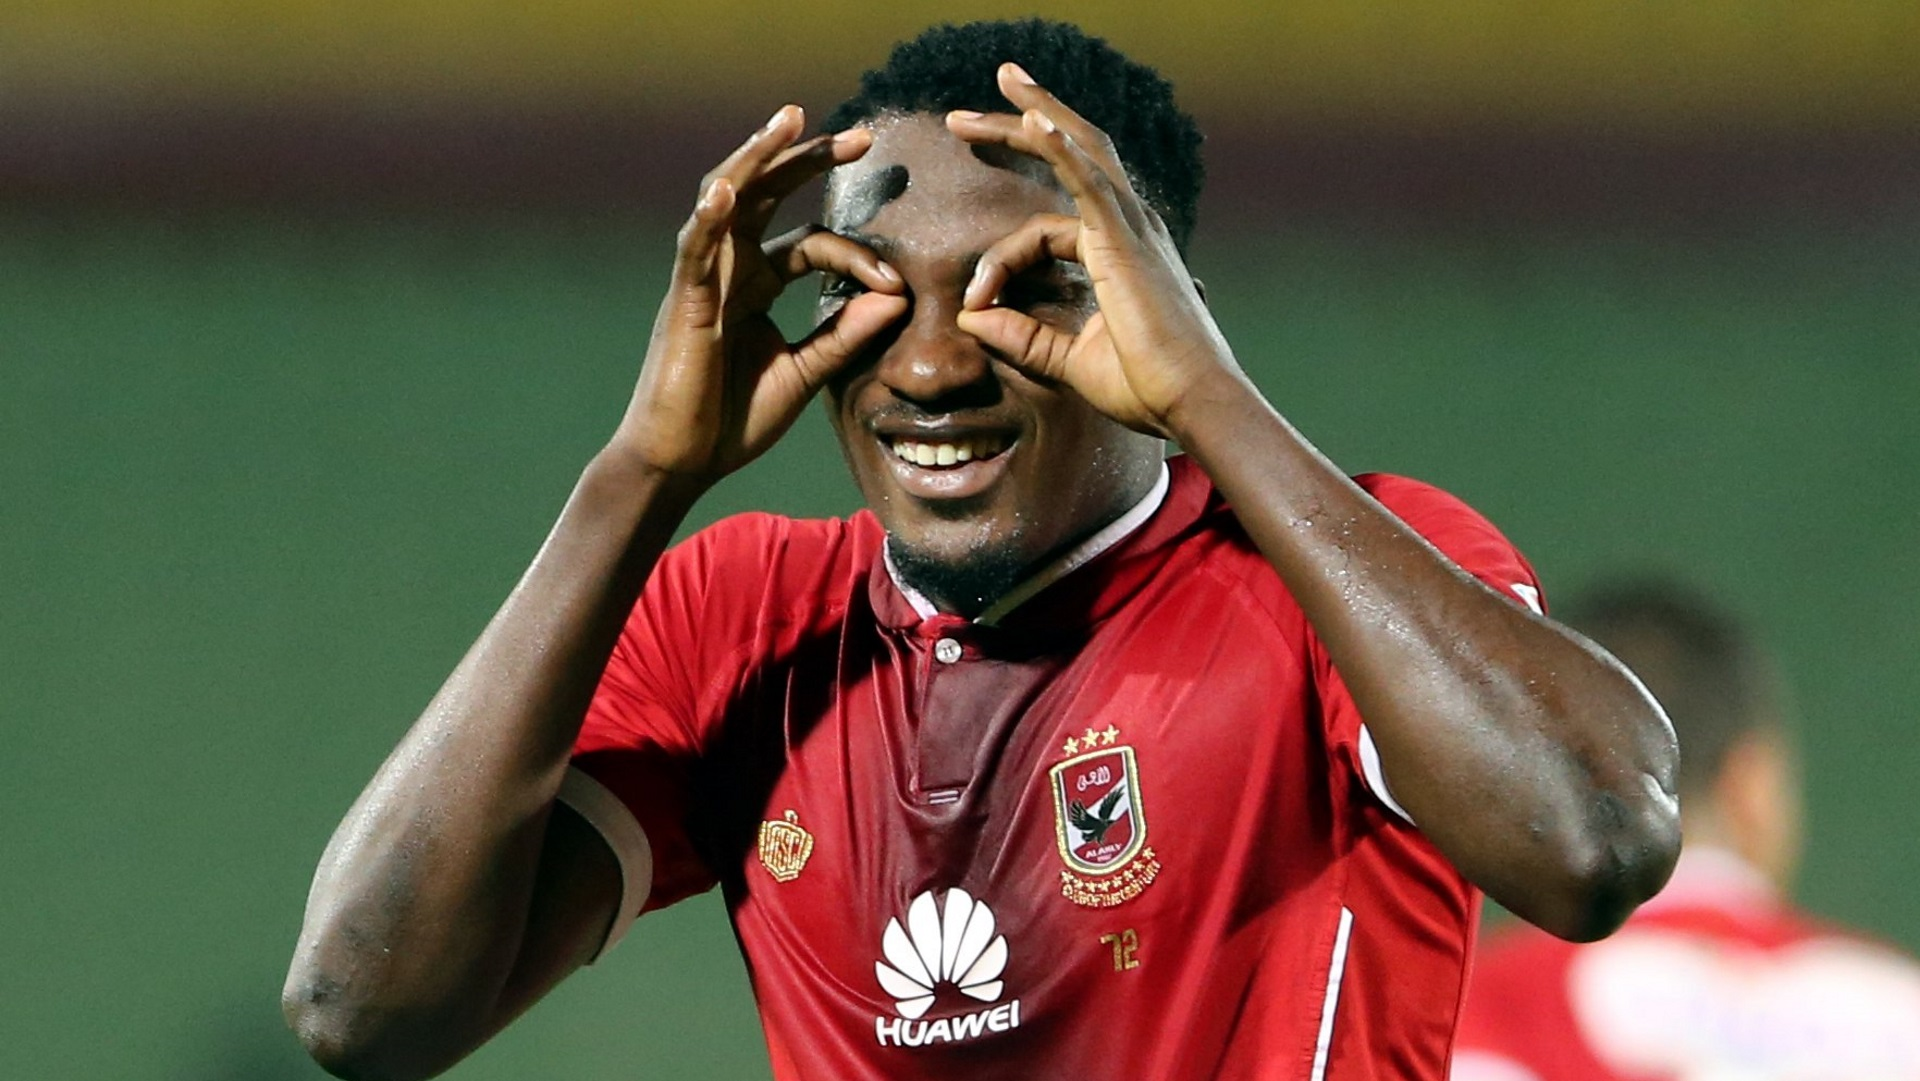 Ajayi and El Shenawy headline Al Ahly squad for Wydad Casablanca clash